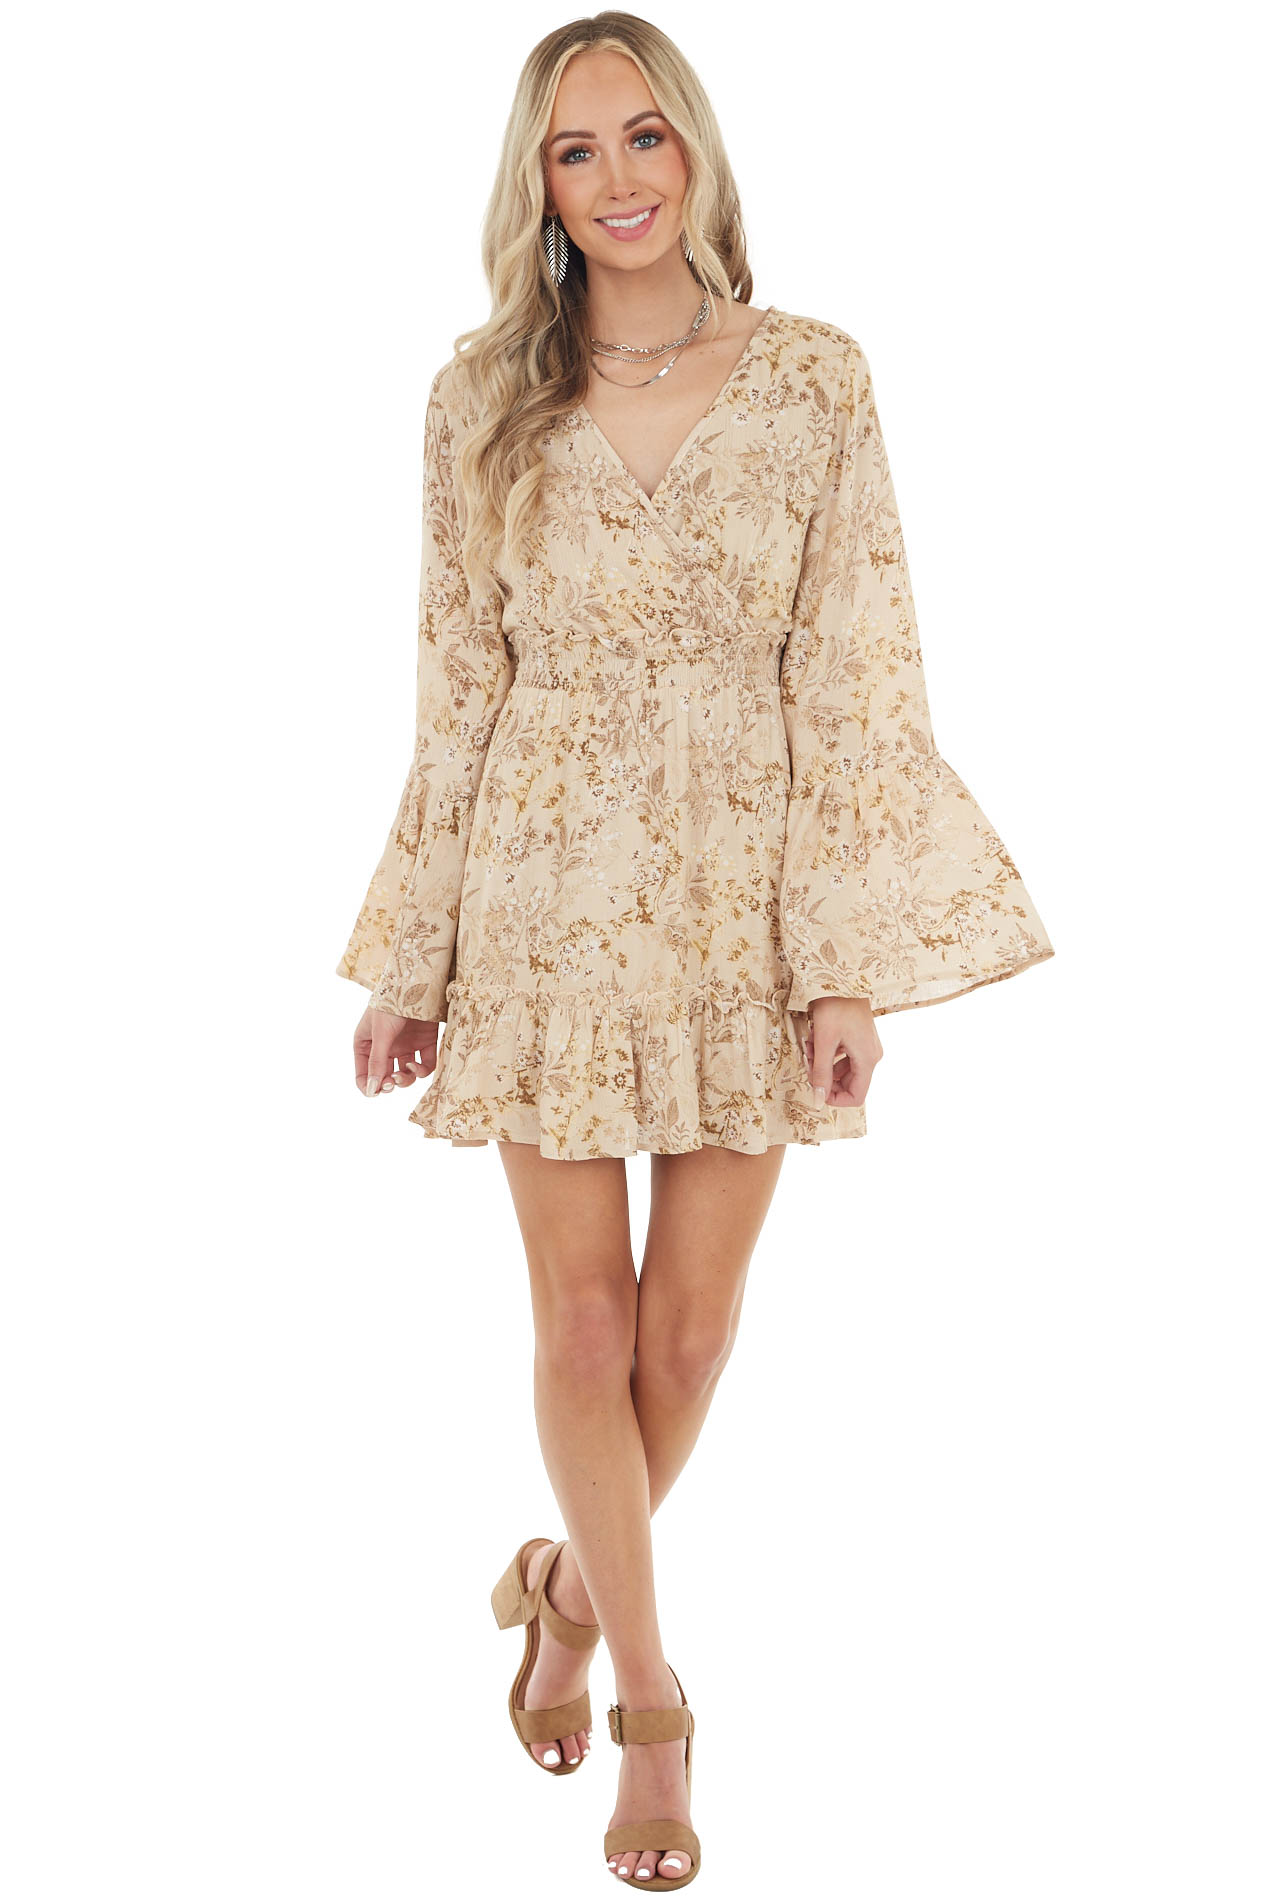 Beige Floral Print Ruffle Short Dress with Long Bell Sleeves